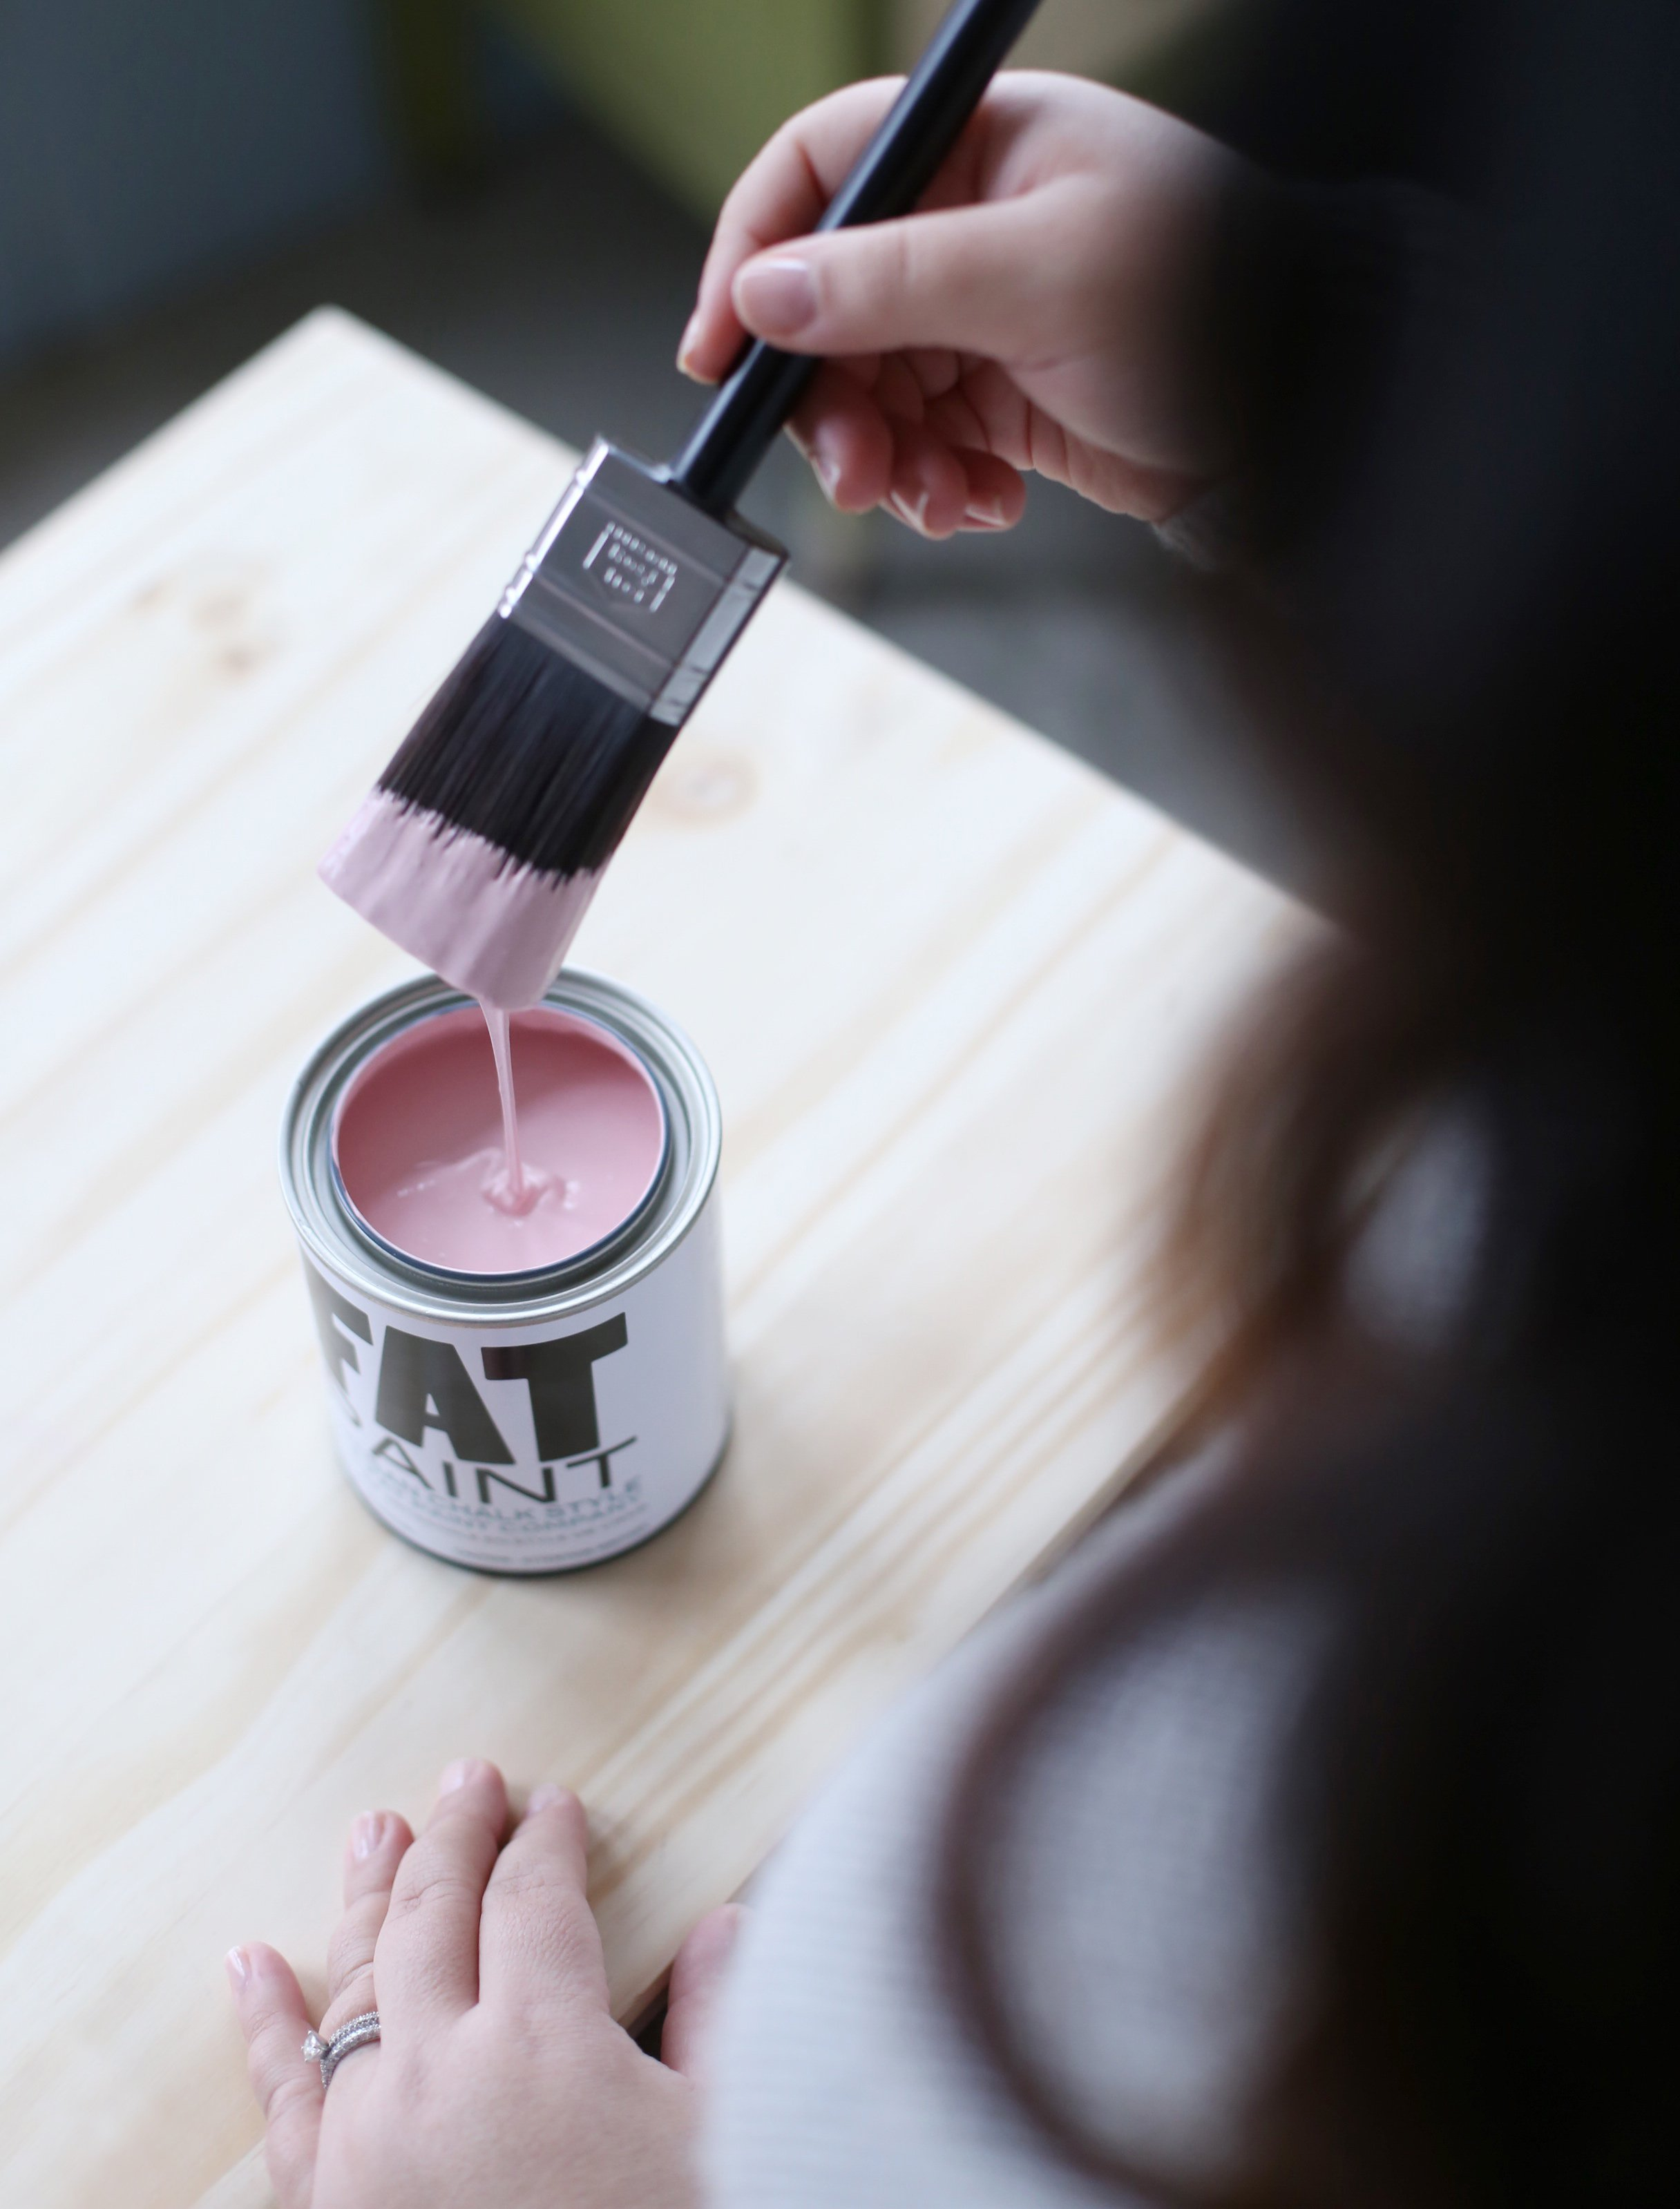 This IKEA Hack uses Juno - a new pink soon to be on the FAT Paint palette